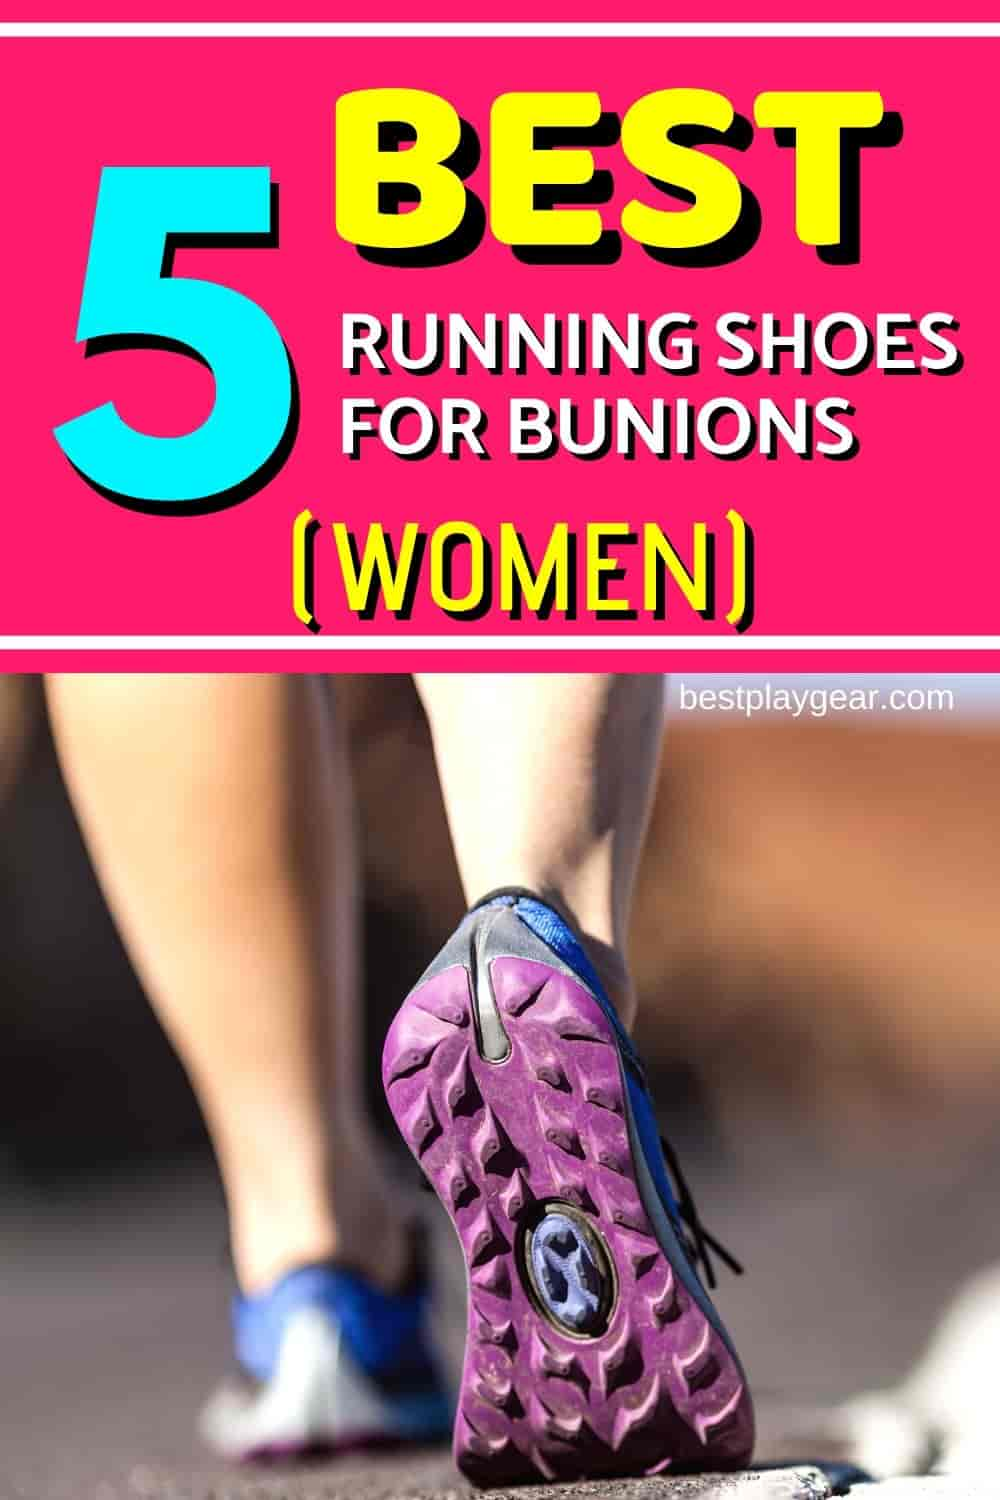 Looking for best running shoes for bunions for women? Here are the absolute top ones. These running shoes will help you to run without the problem of bunion pain. Also, they are specially selected for women so you will not have to keep searching.